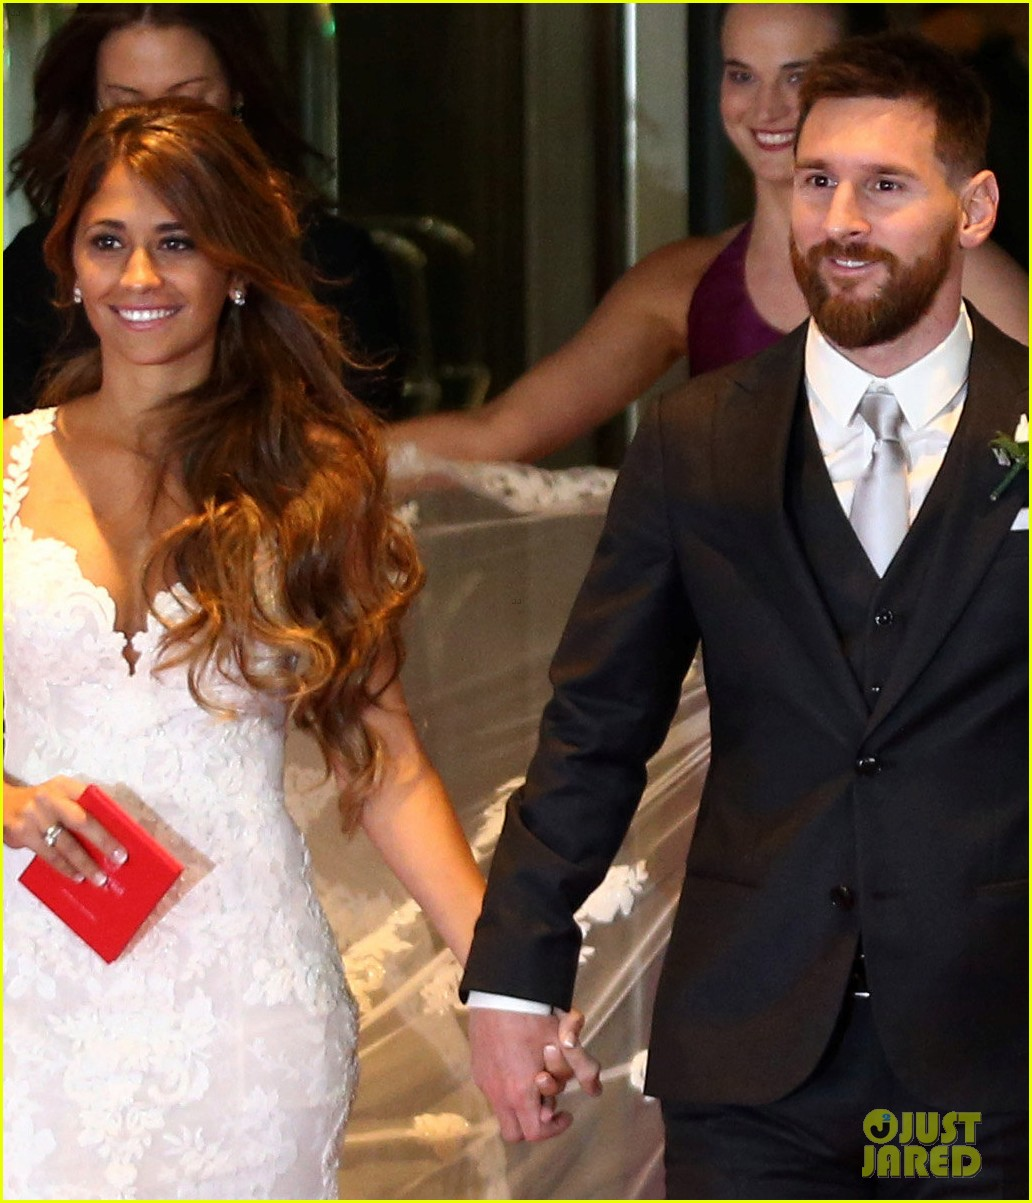 Shakira Wedding: Shakira Attends Soccer Star Lionel Messi's Wedding: Photo